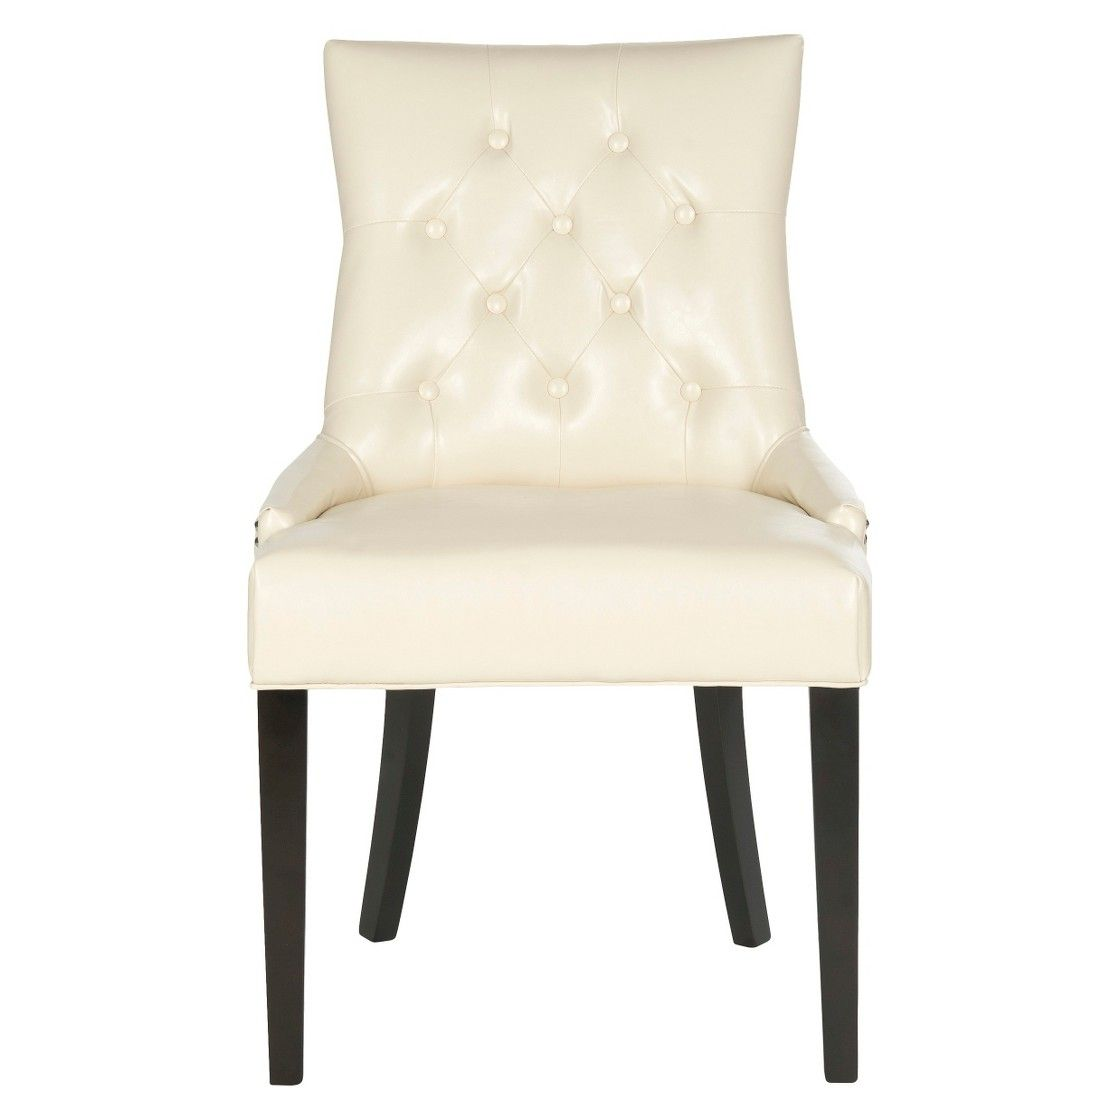 Safavieh Harlow Dining Chair Set Of 2 (With Images